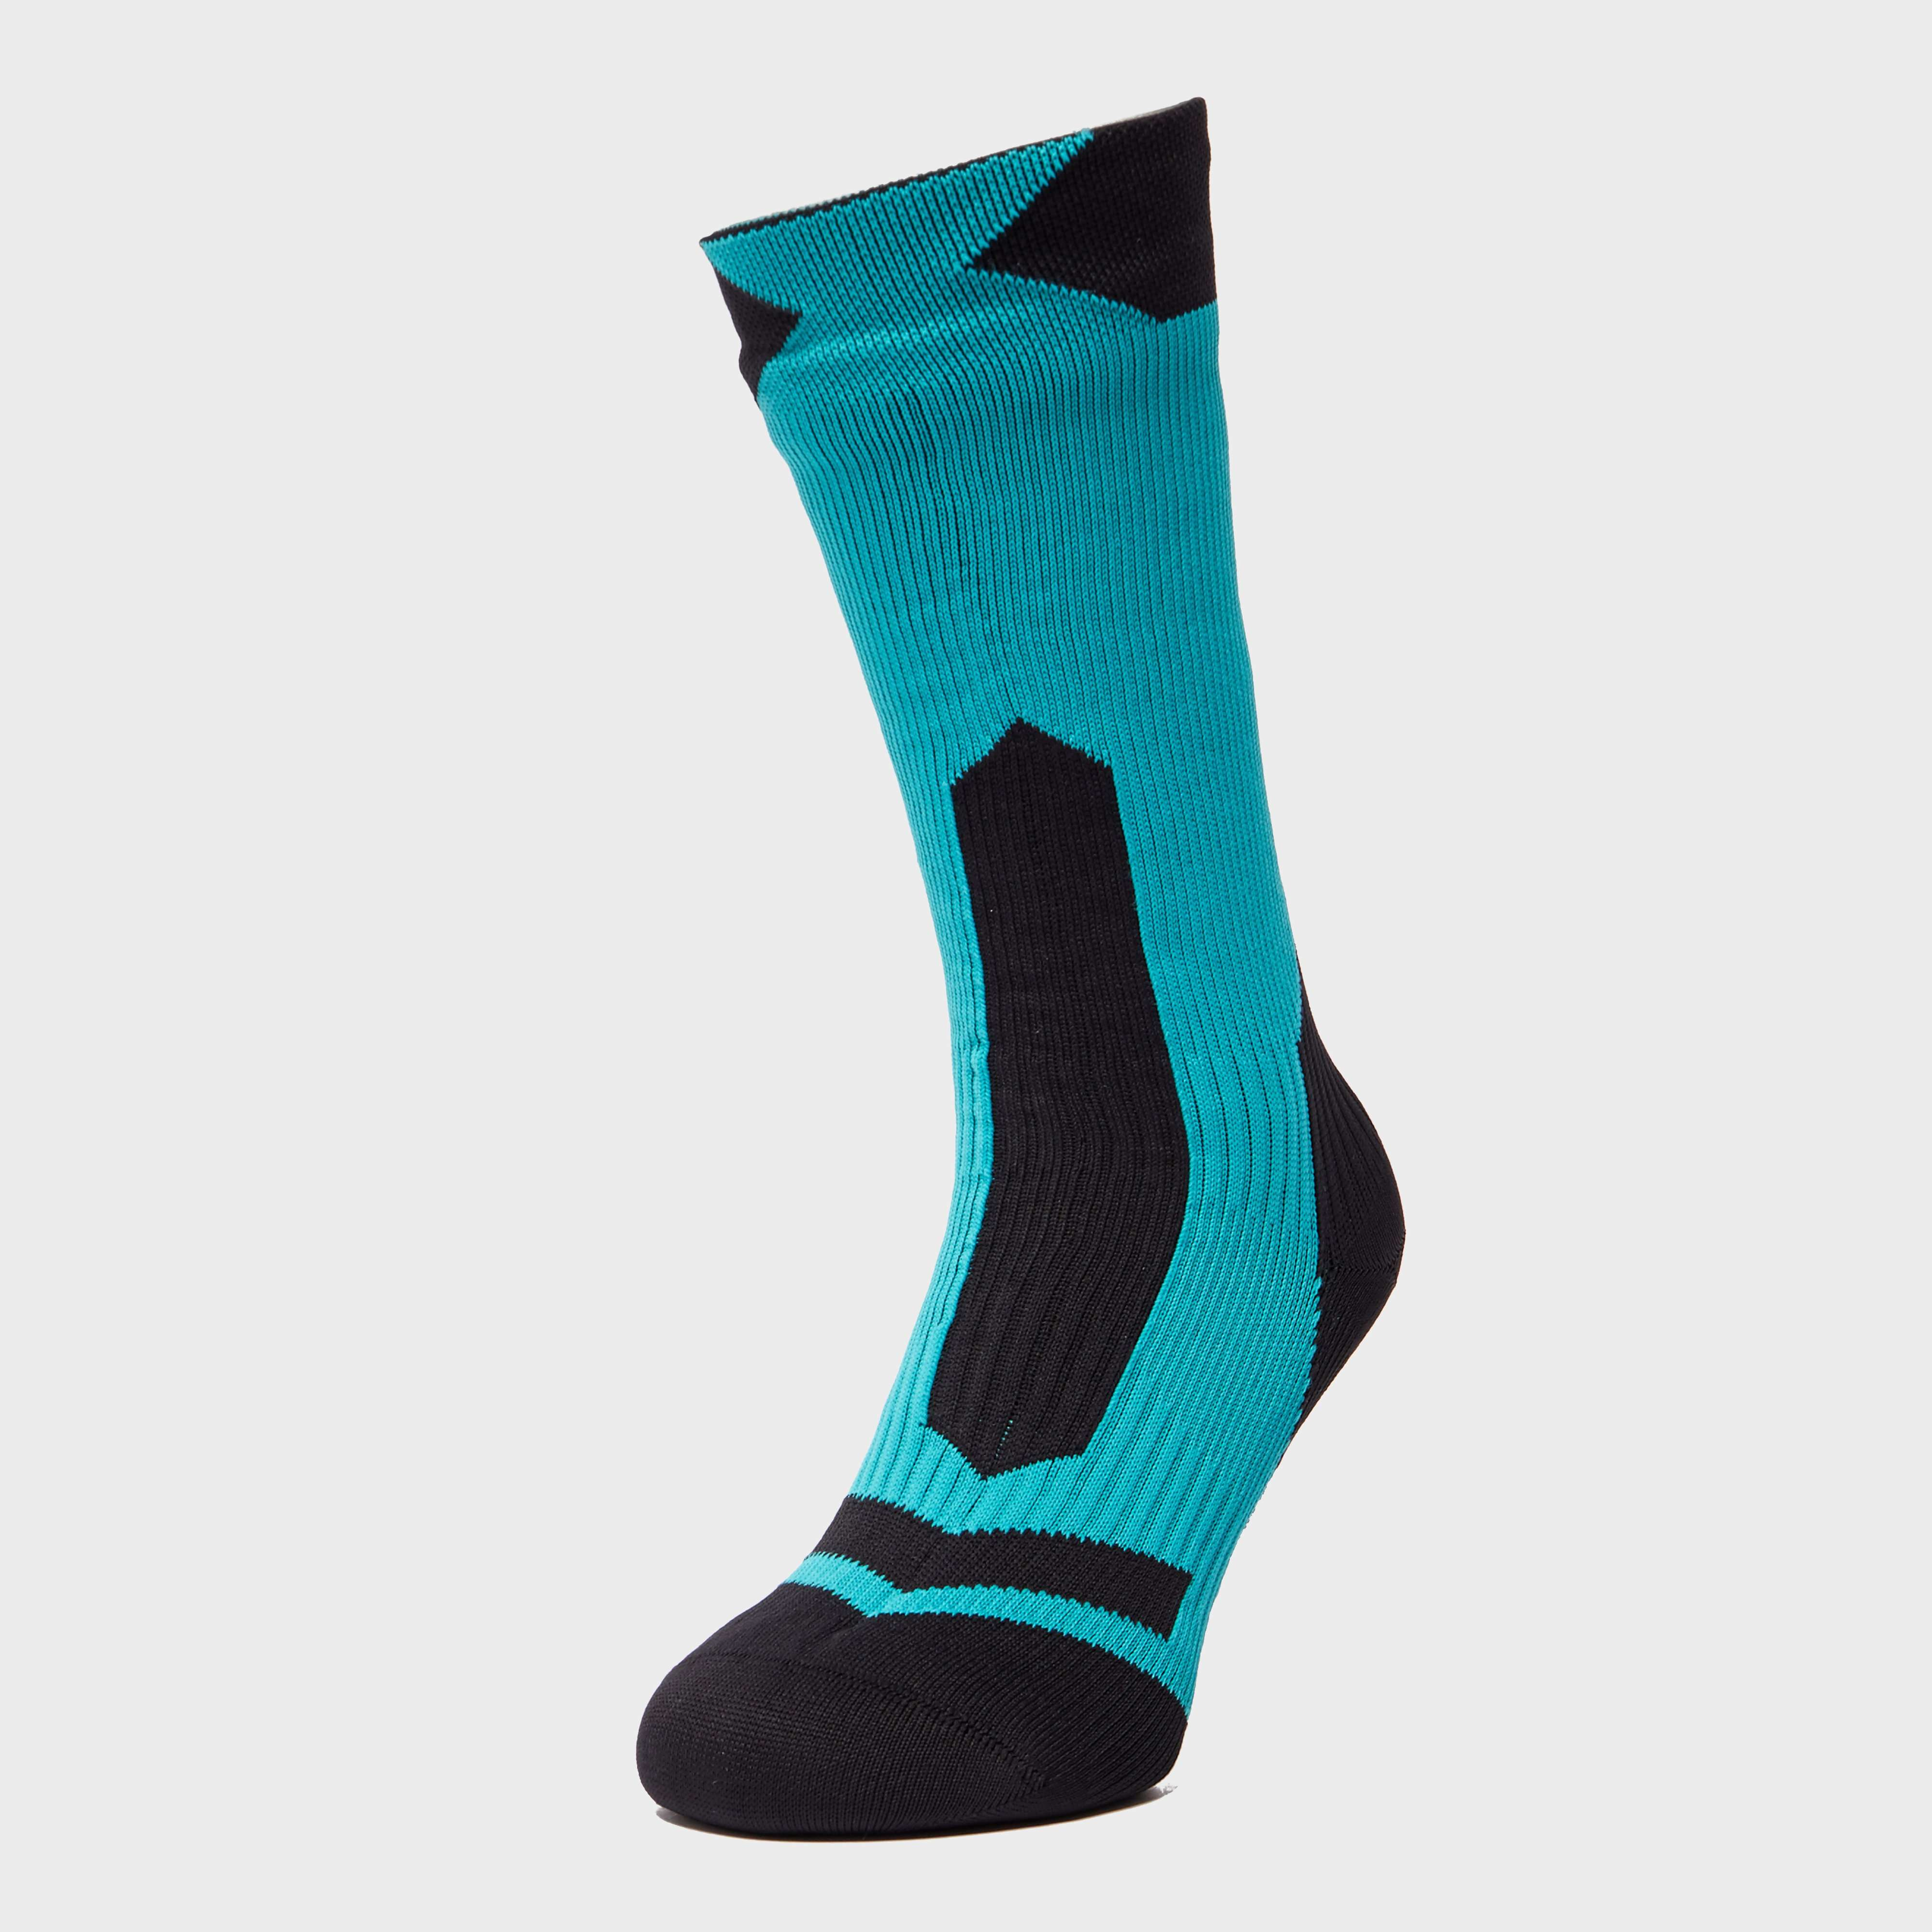 SEALSKINZ Men's Trek Mid Length Socks